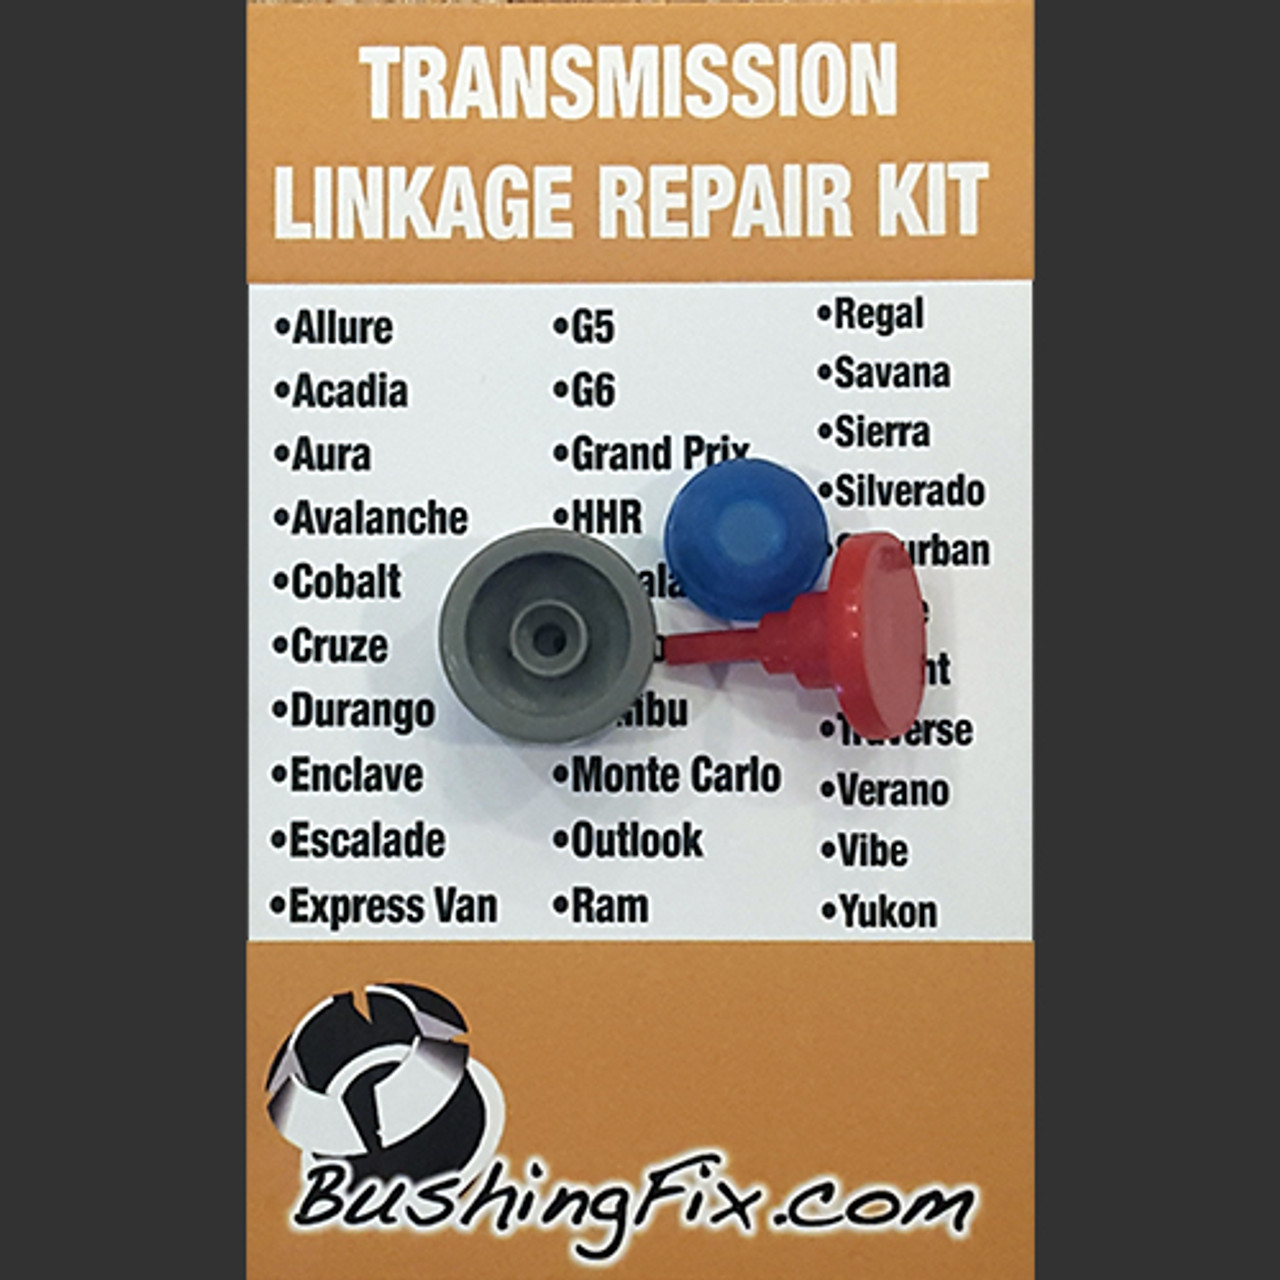 Chevrolet Silverado 1500 transmission shift selector cable repaired using the replacement bushing kit